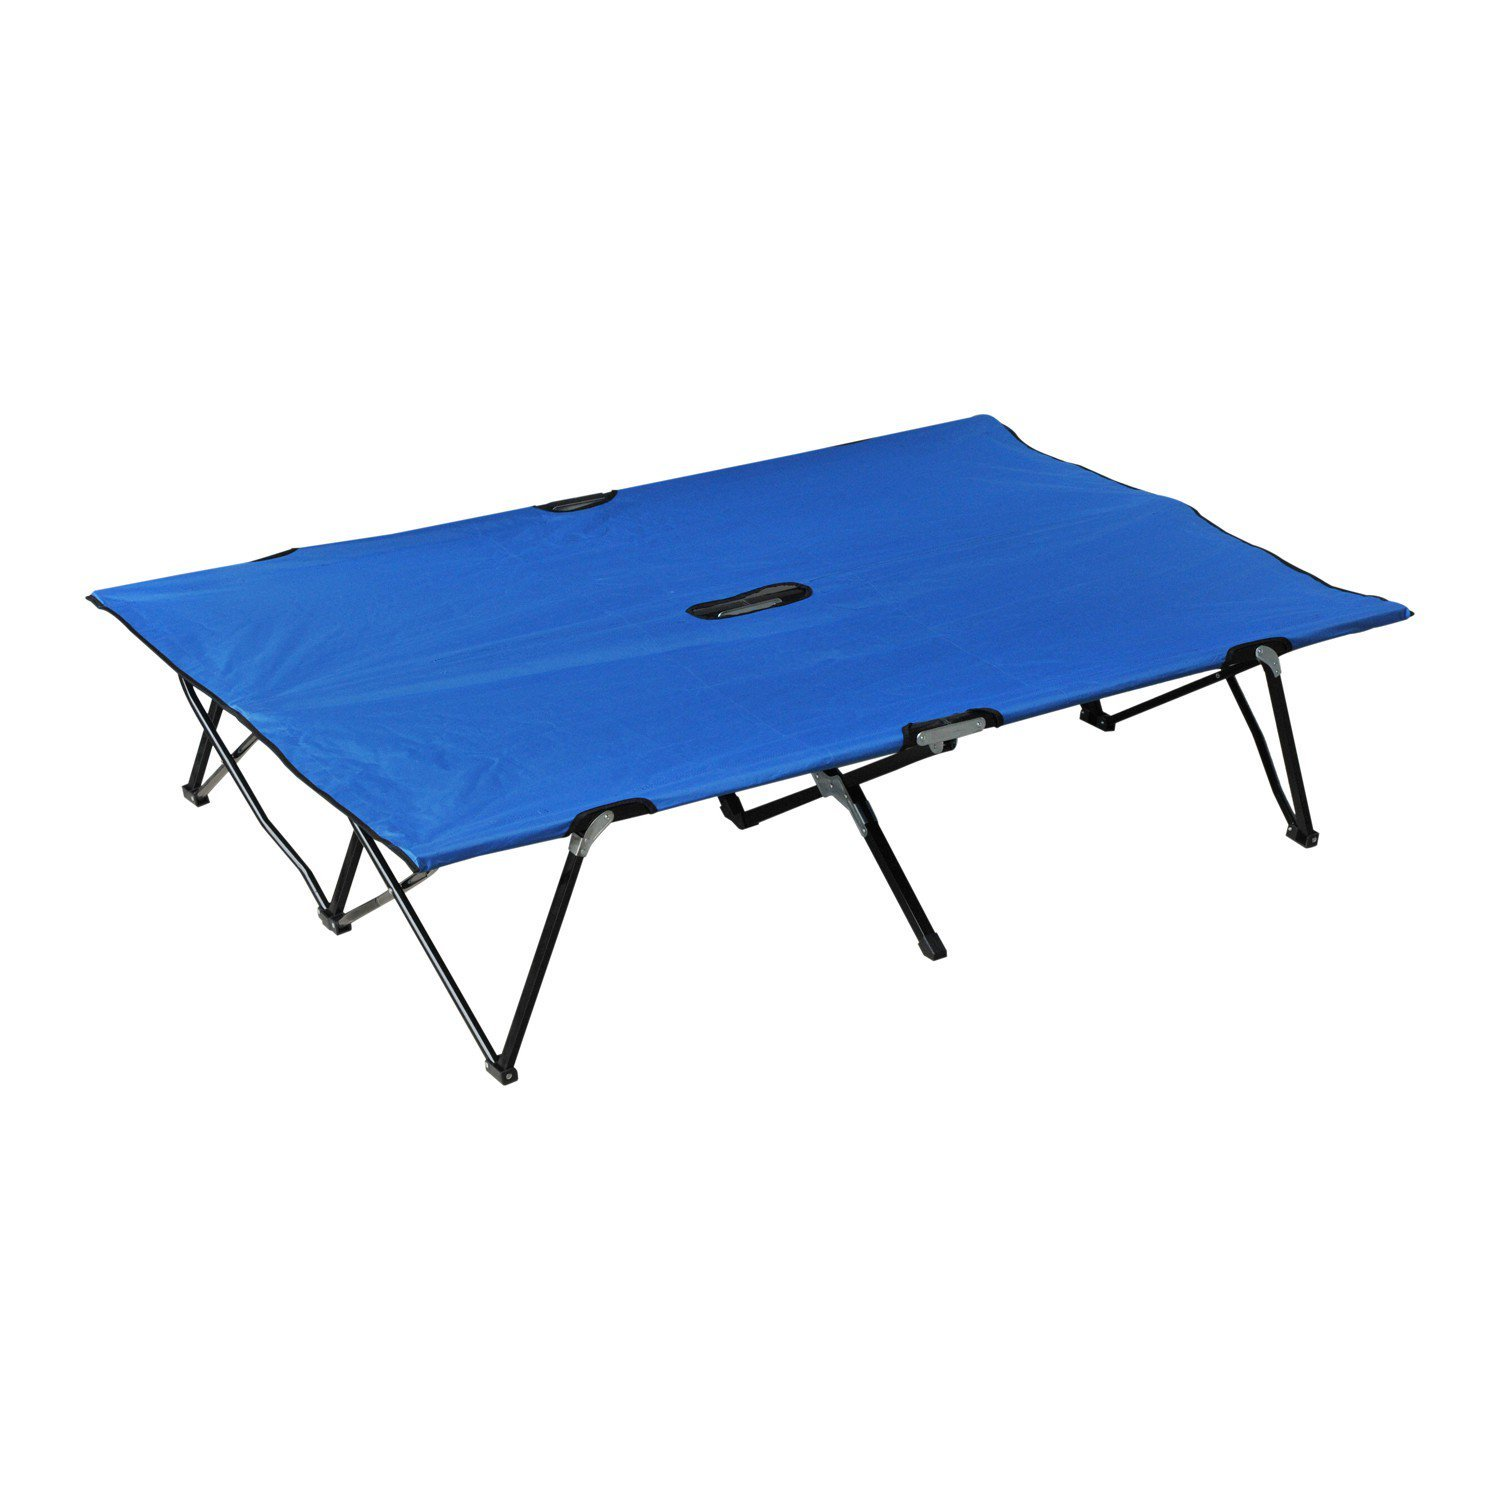 Folding Portable Double Camping Cot For 2 Person 76'' Picnic Patio With Ebook